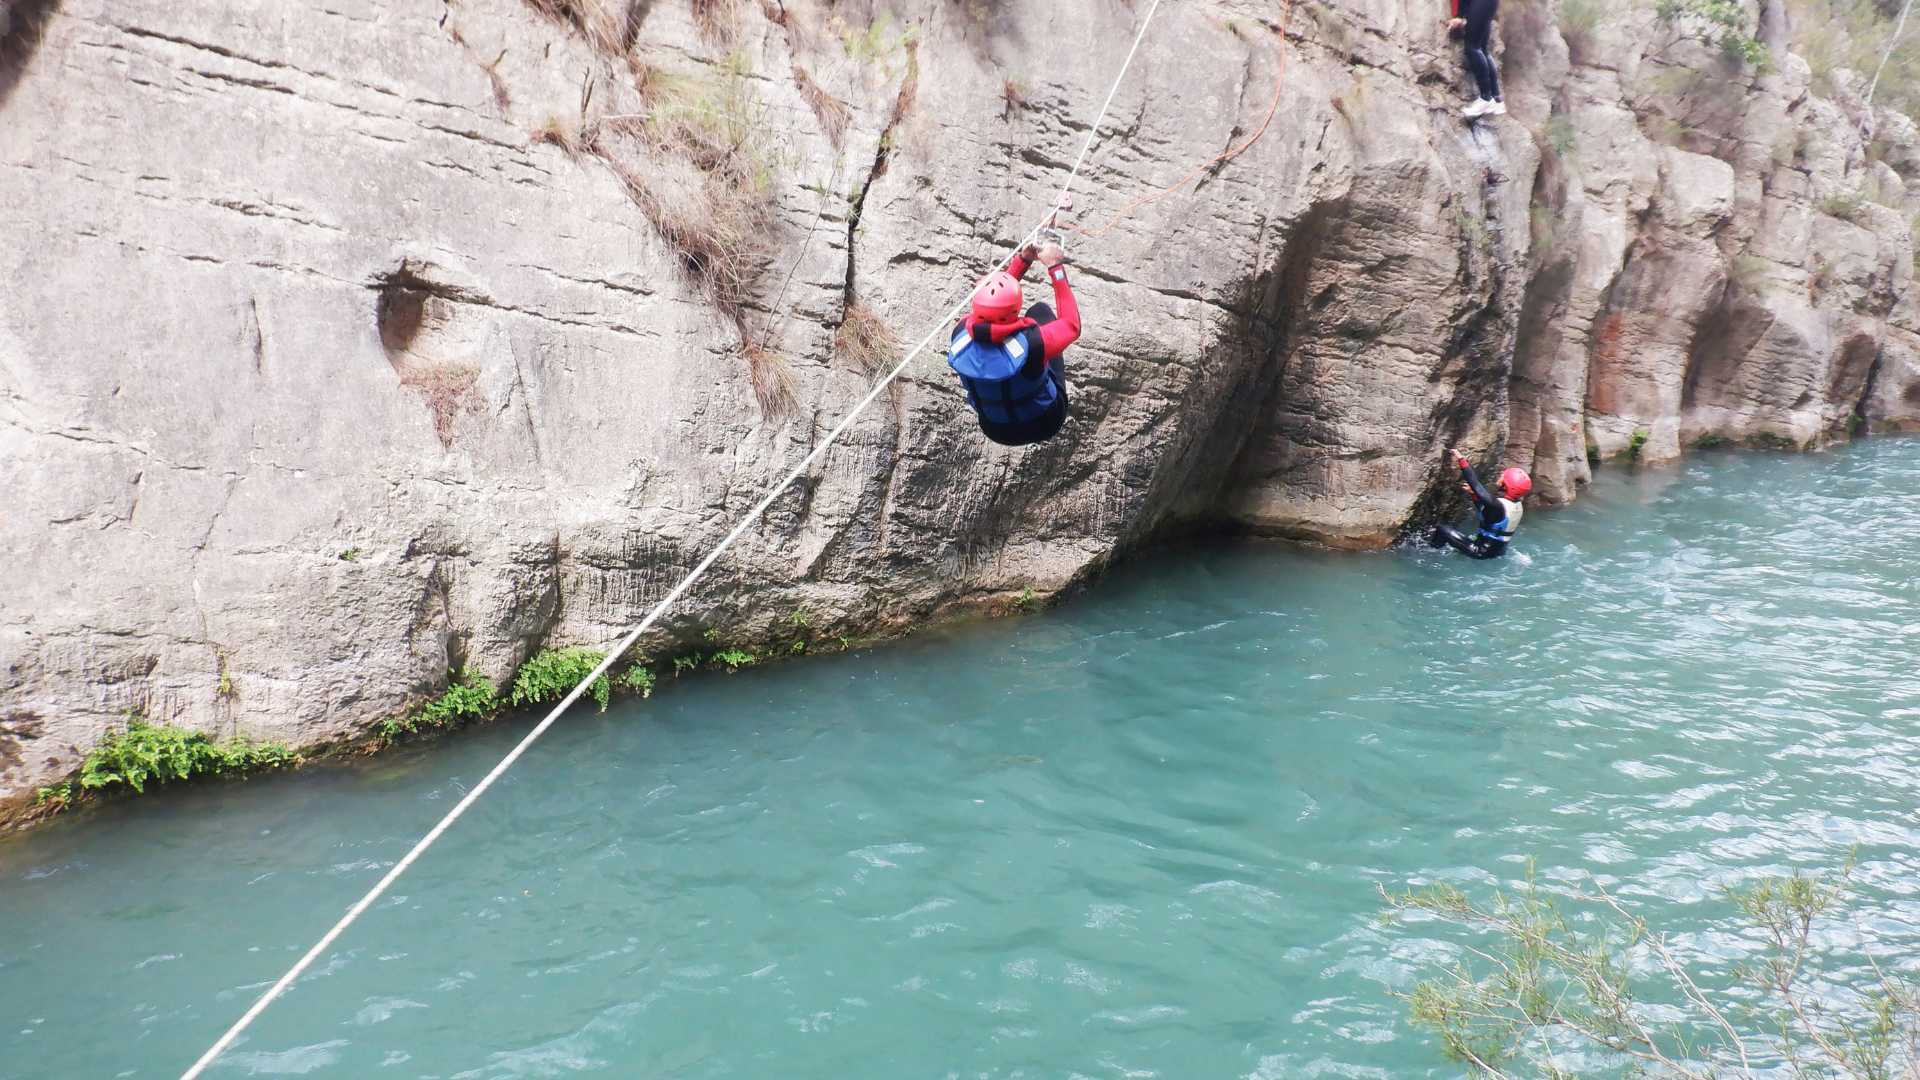 Canyoning with a zip line